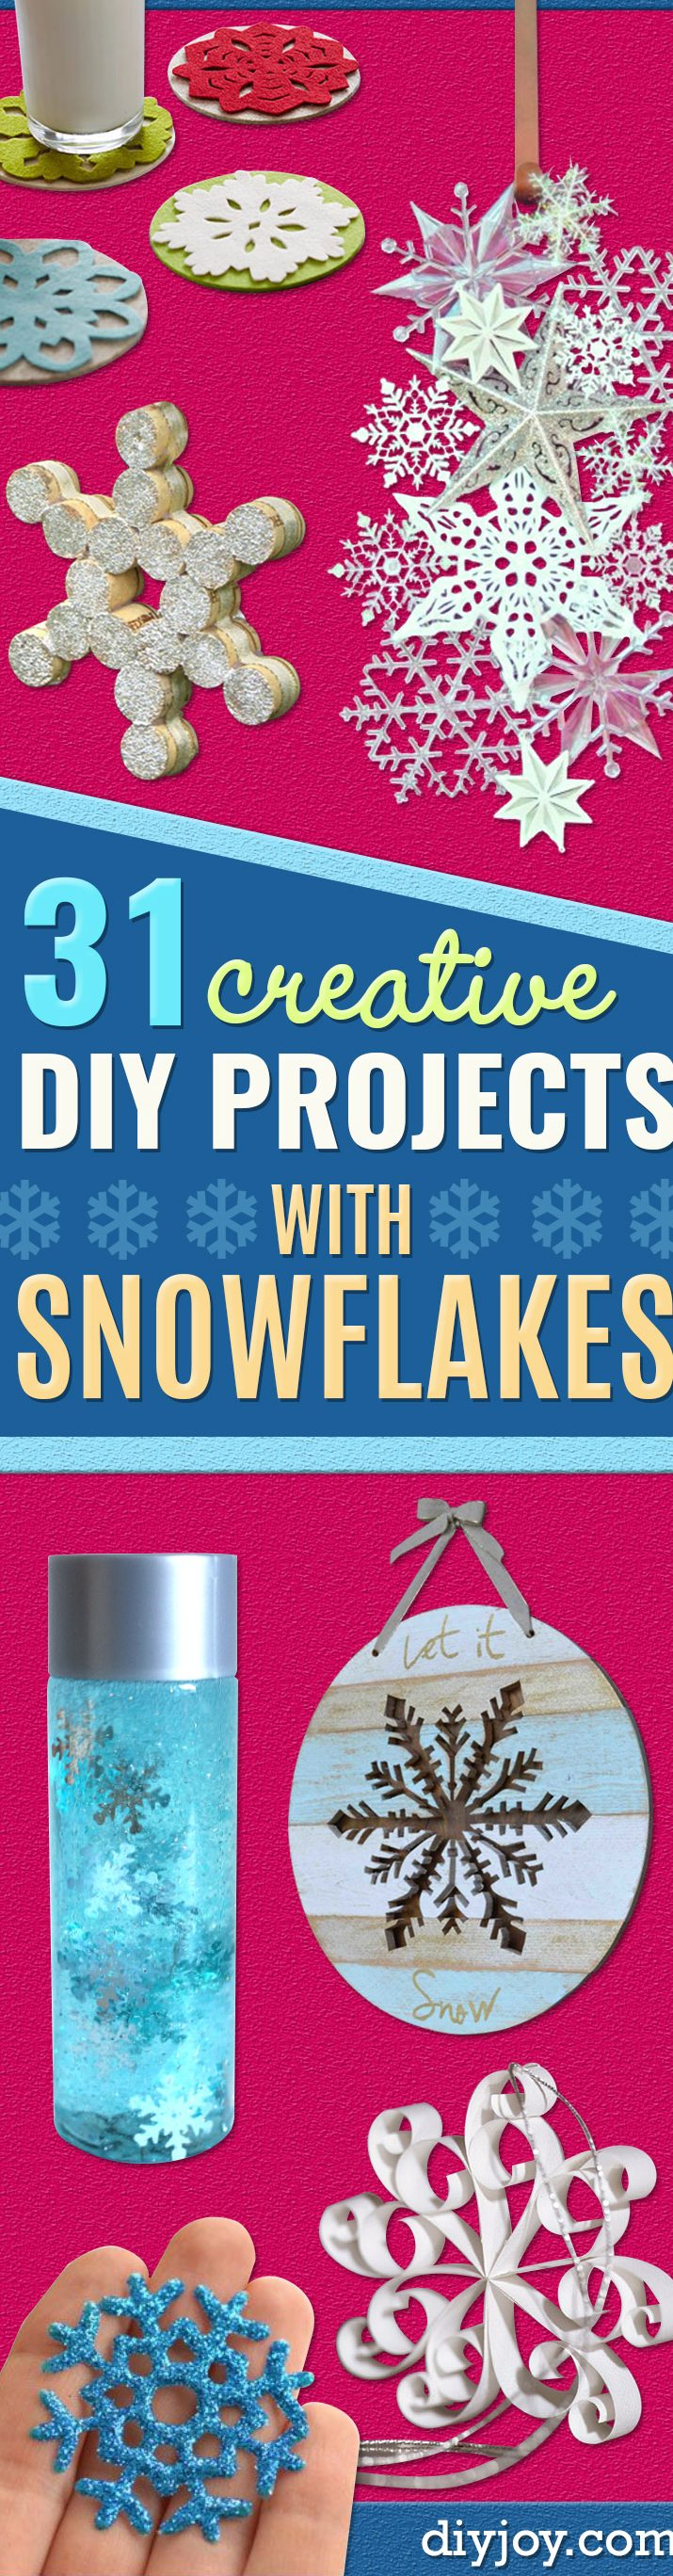 snowflake craft ideas winter - Best DIY Snowflake Decorations, Ornaments and Crafts - Paper Crafts with Snowflakes, Pipe Cleaner Projects, Mason Jars and Dollar Store Ideas - Easy DIY Ideas to Decorate for Winter - Creative Home Decor and Room Decorations for Adults, Teens and Kids